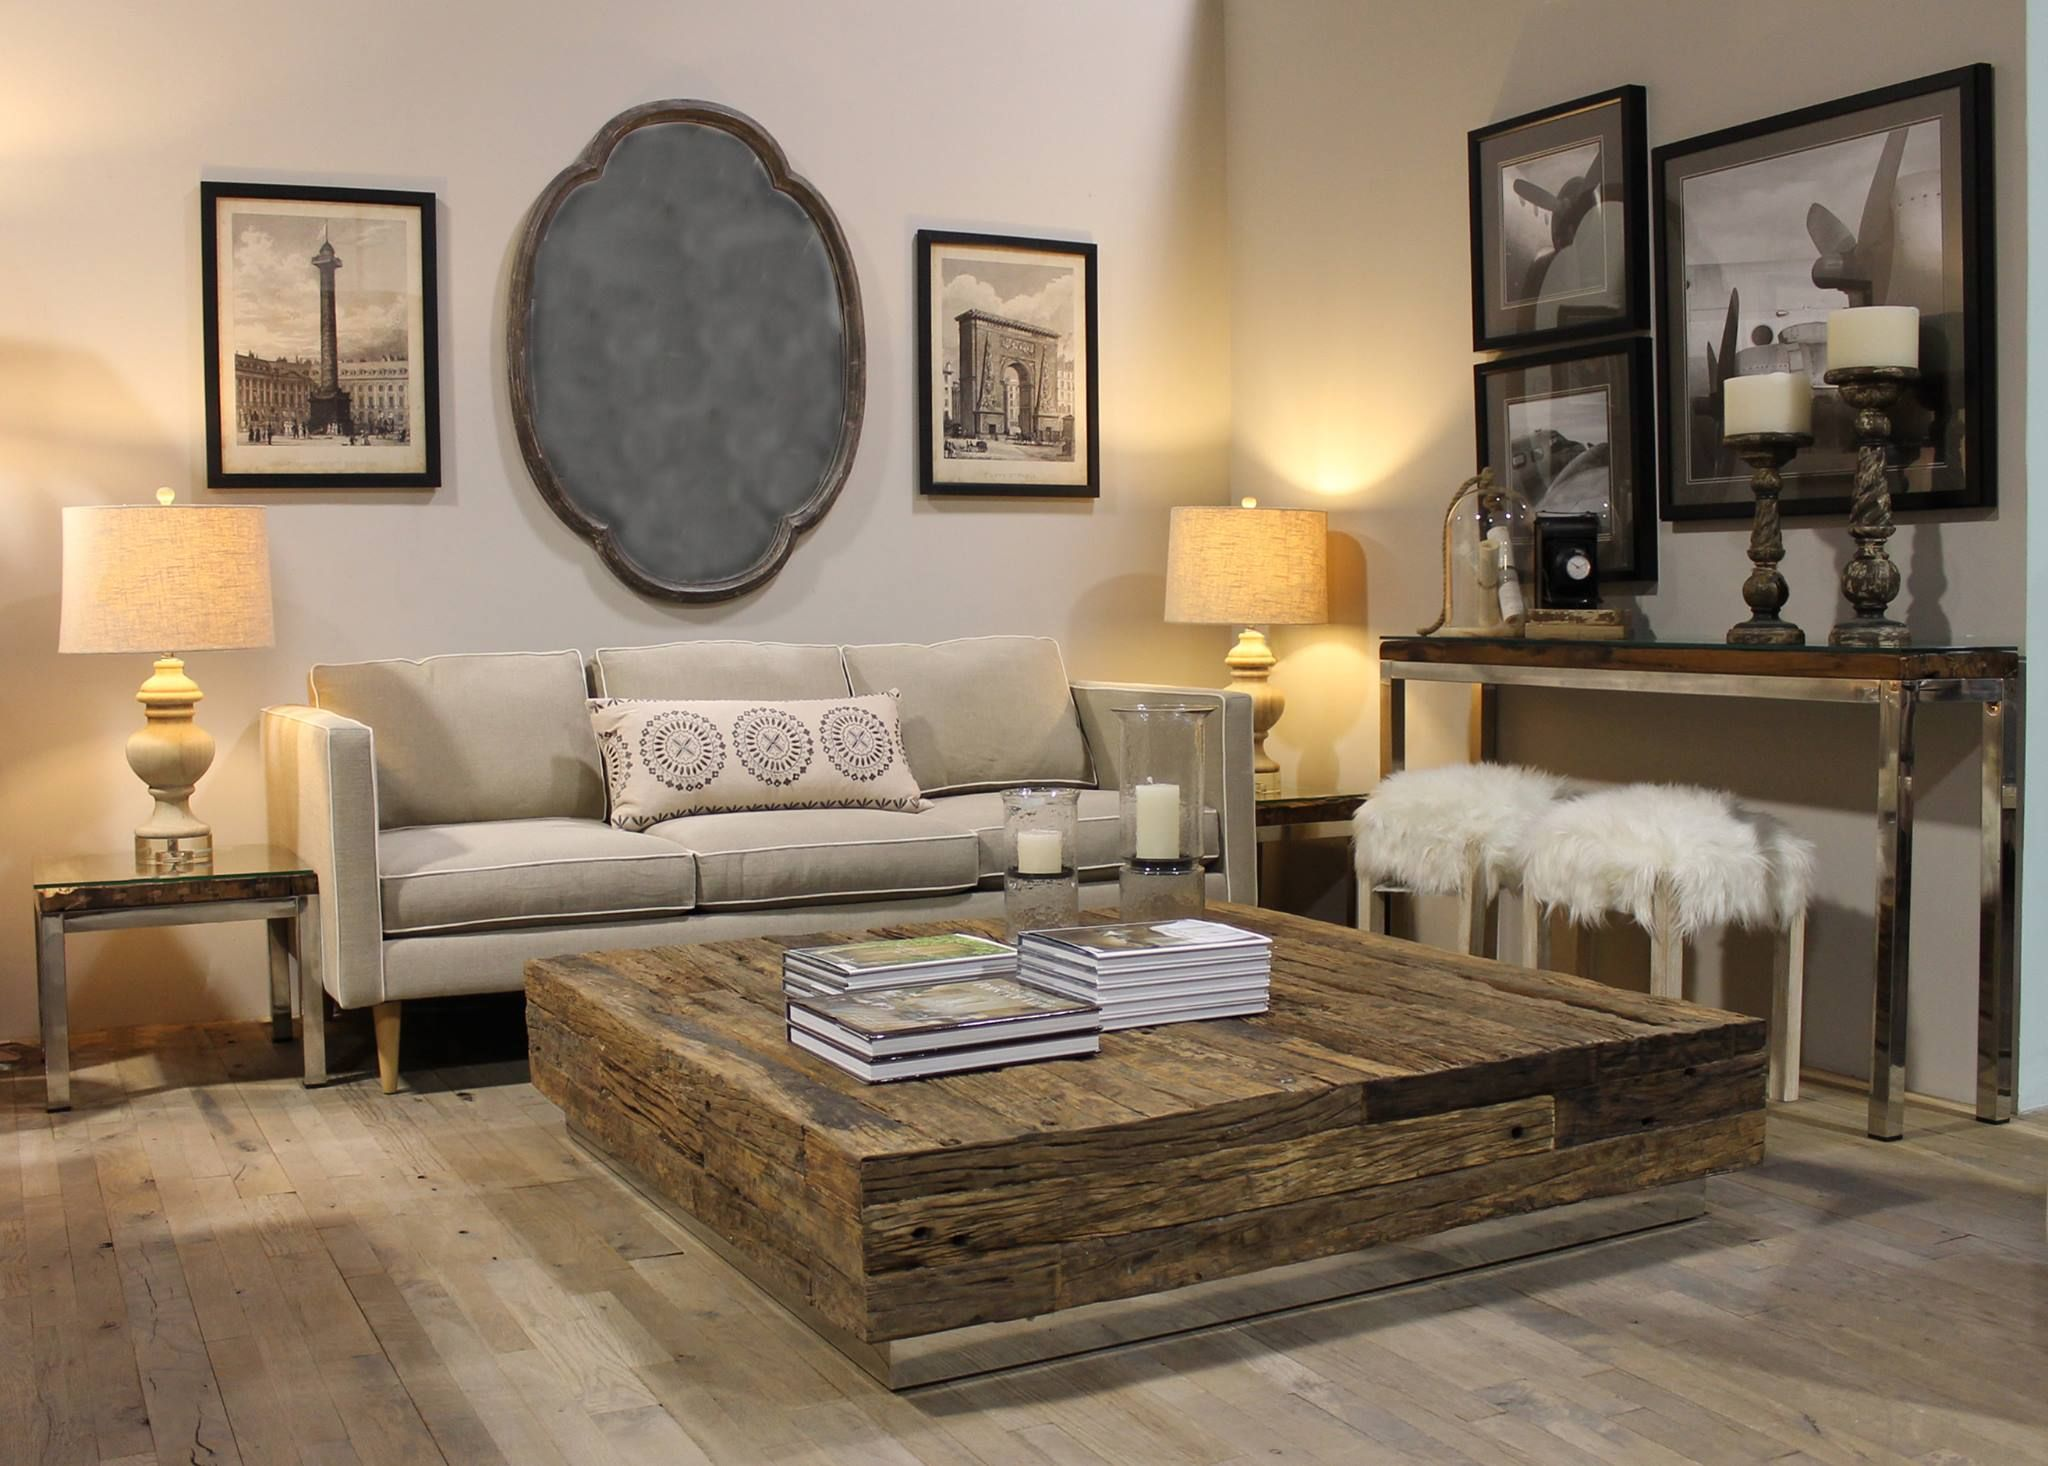 38 Of Miami S Best Home Goods And Furniture Stores 2015 At Home